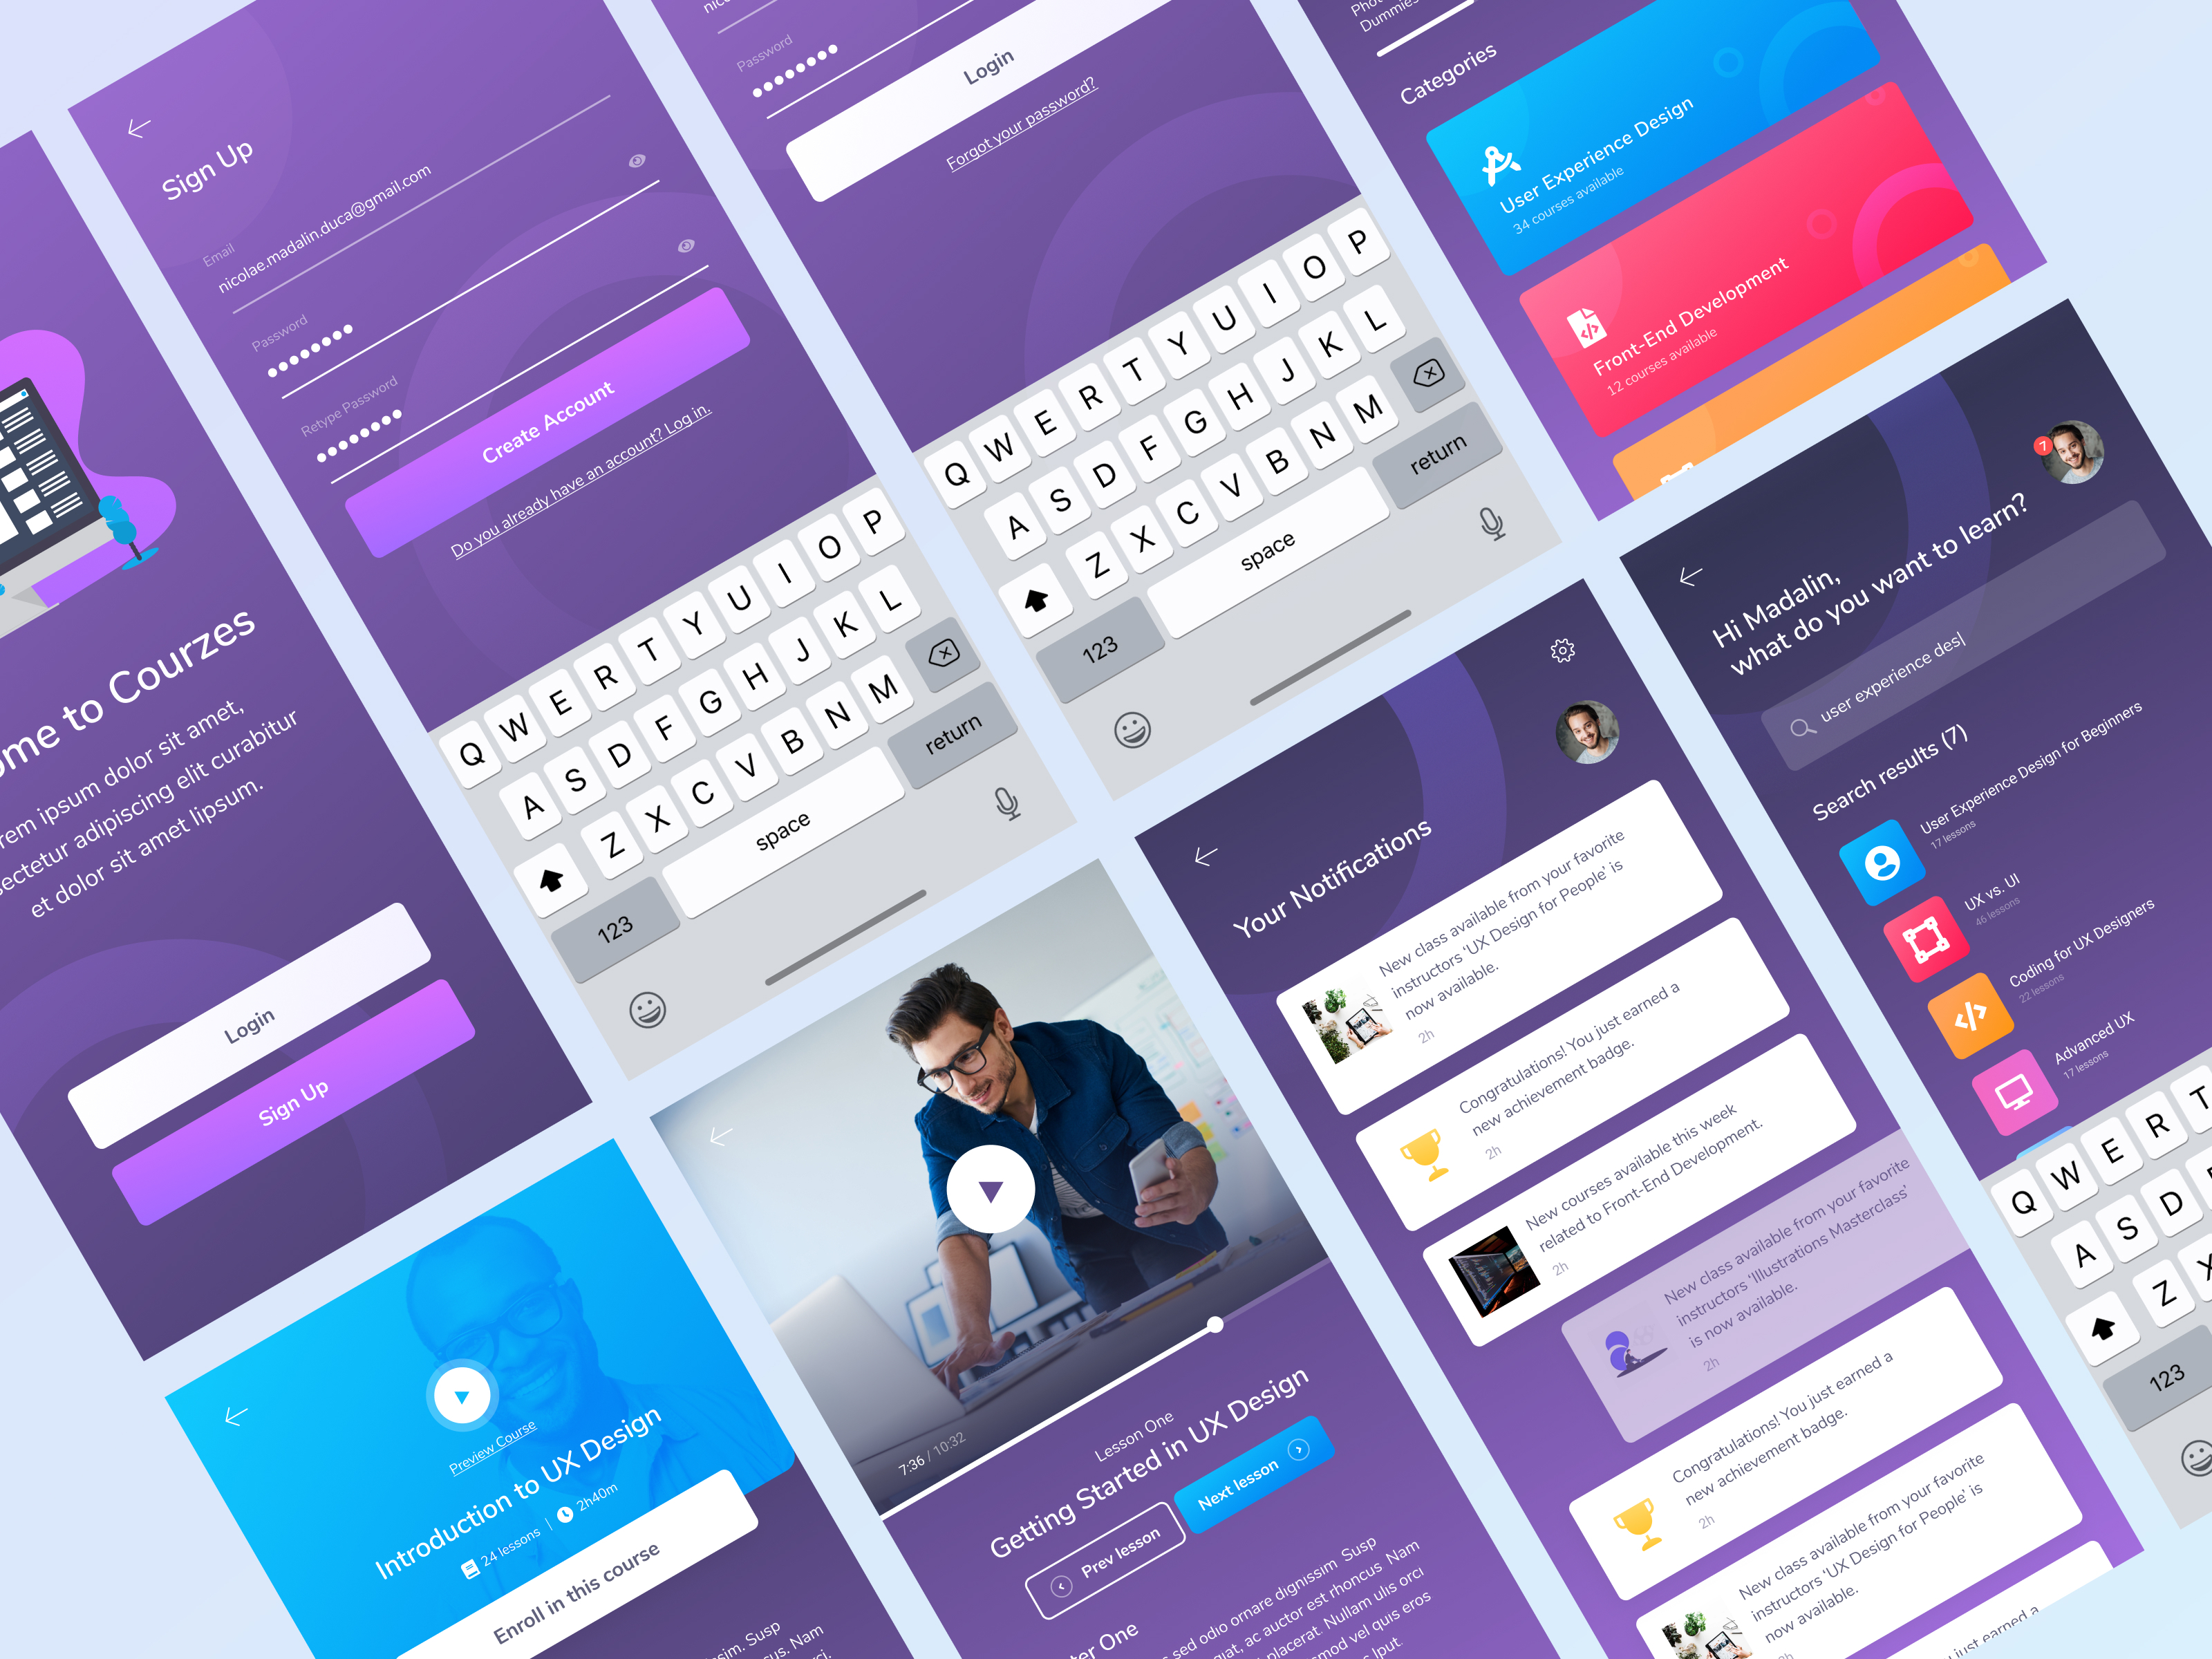 Coursez - Mobile App Design for Online Courses Case Study